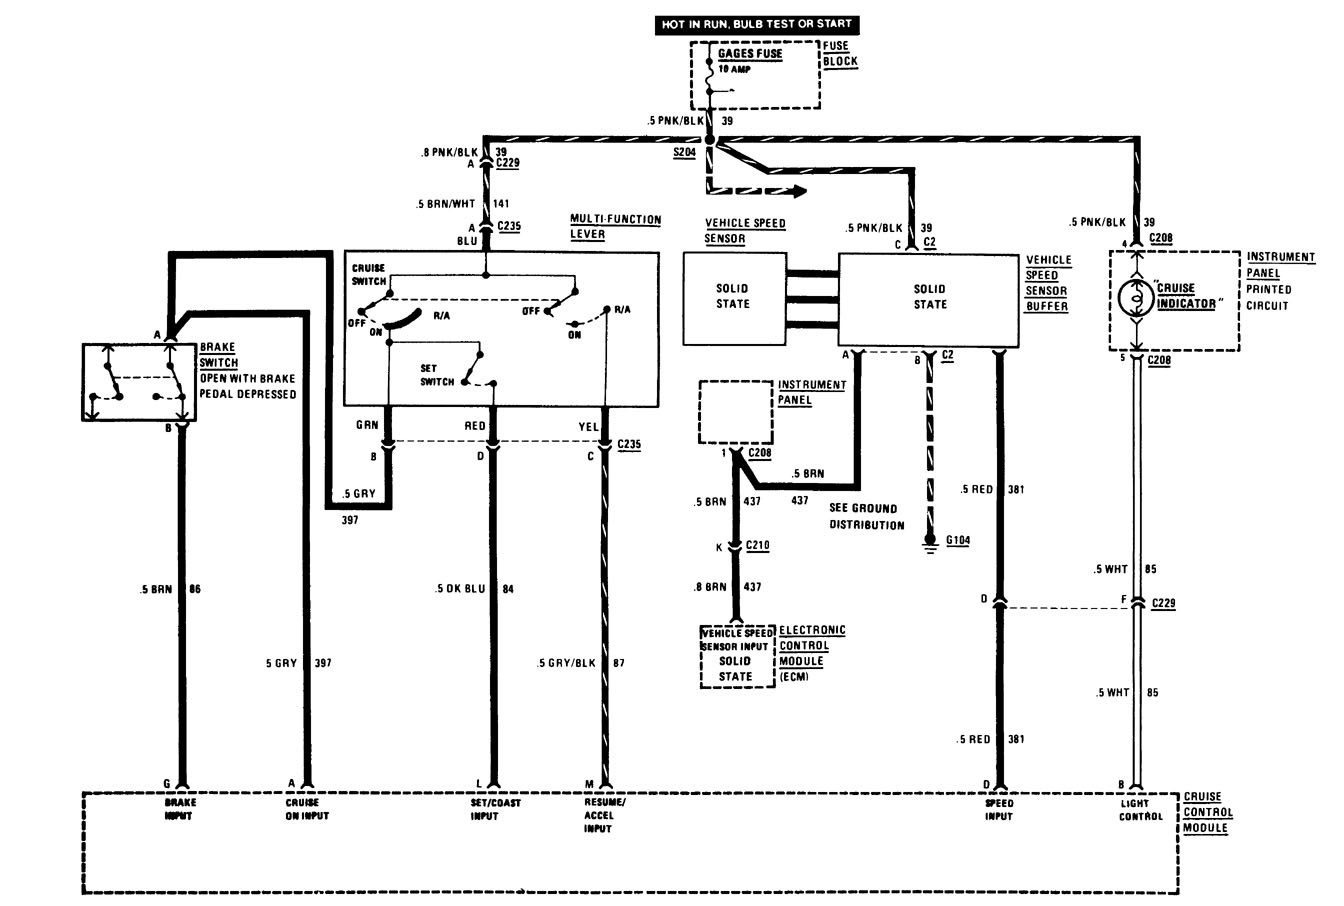 DIAGRAM] Fuse Box Diagram Of 2000 Century FULL Version HD Quality 2000  Century - DIAGRAMMAGROUP.KICKBOXEN-TAEKWONDO.DEkickboxen-taekwondo.de